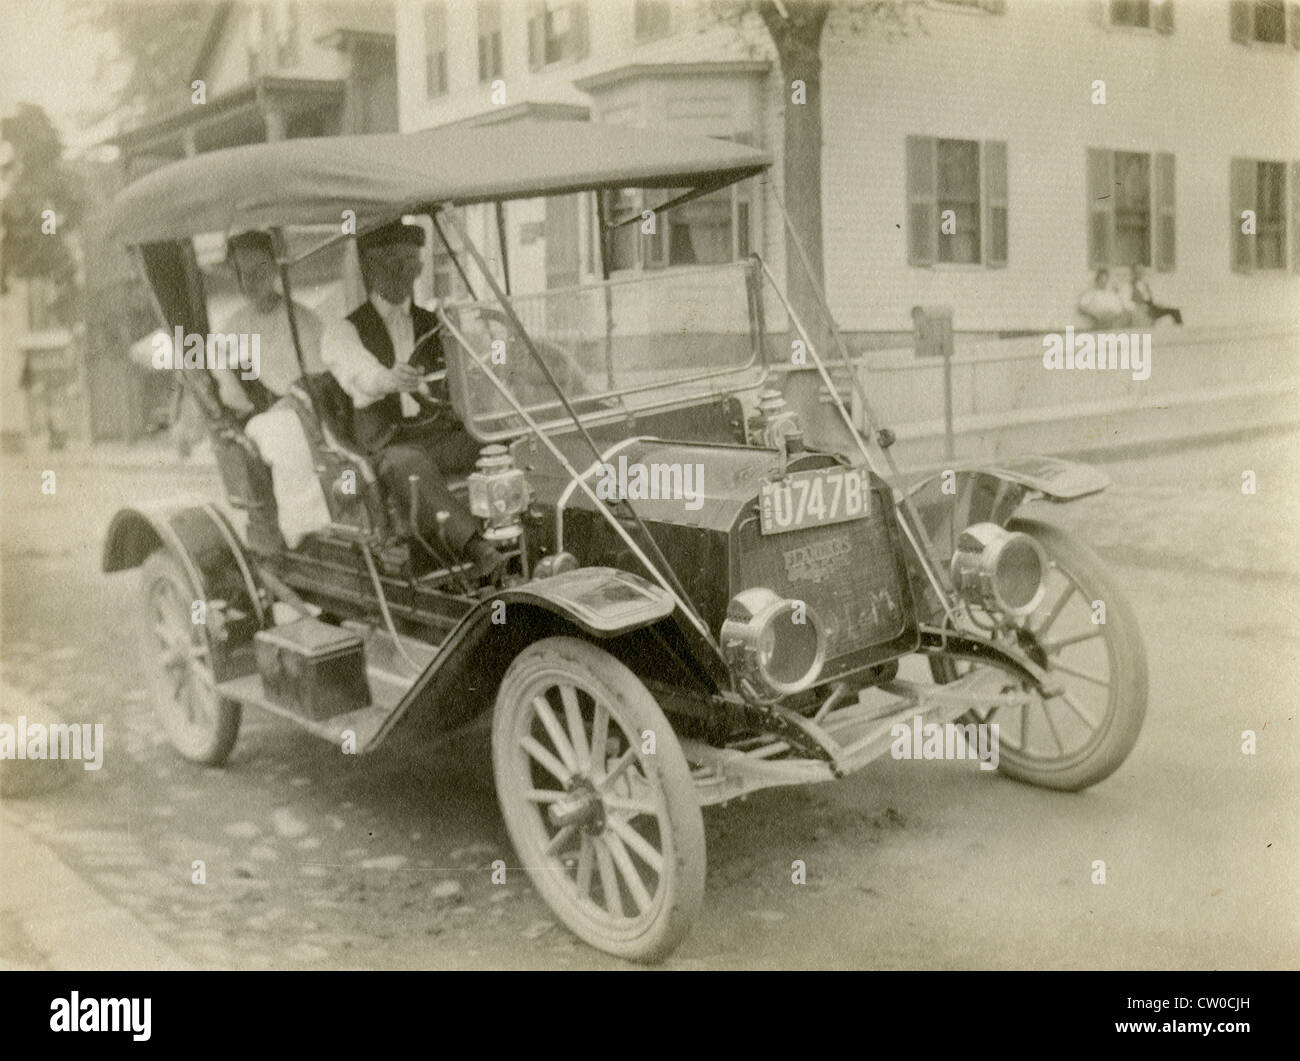 Circa 1910s photograph, antique Flanders car. The license plate is Massachusetts, 1911. - Stock Image